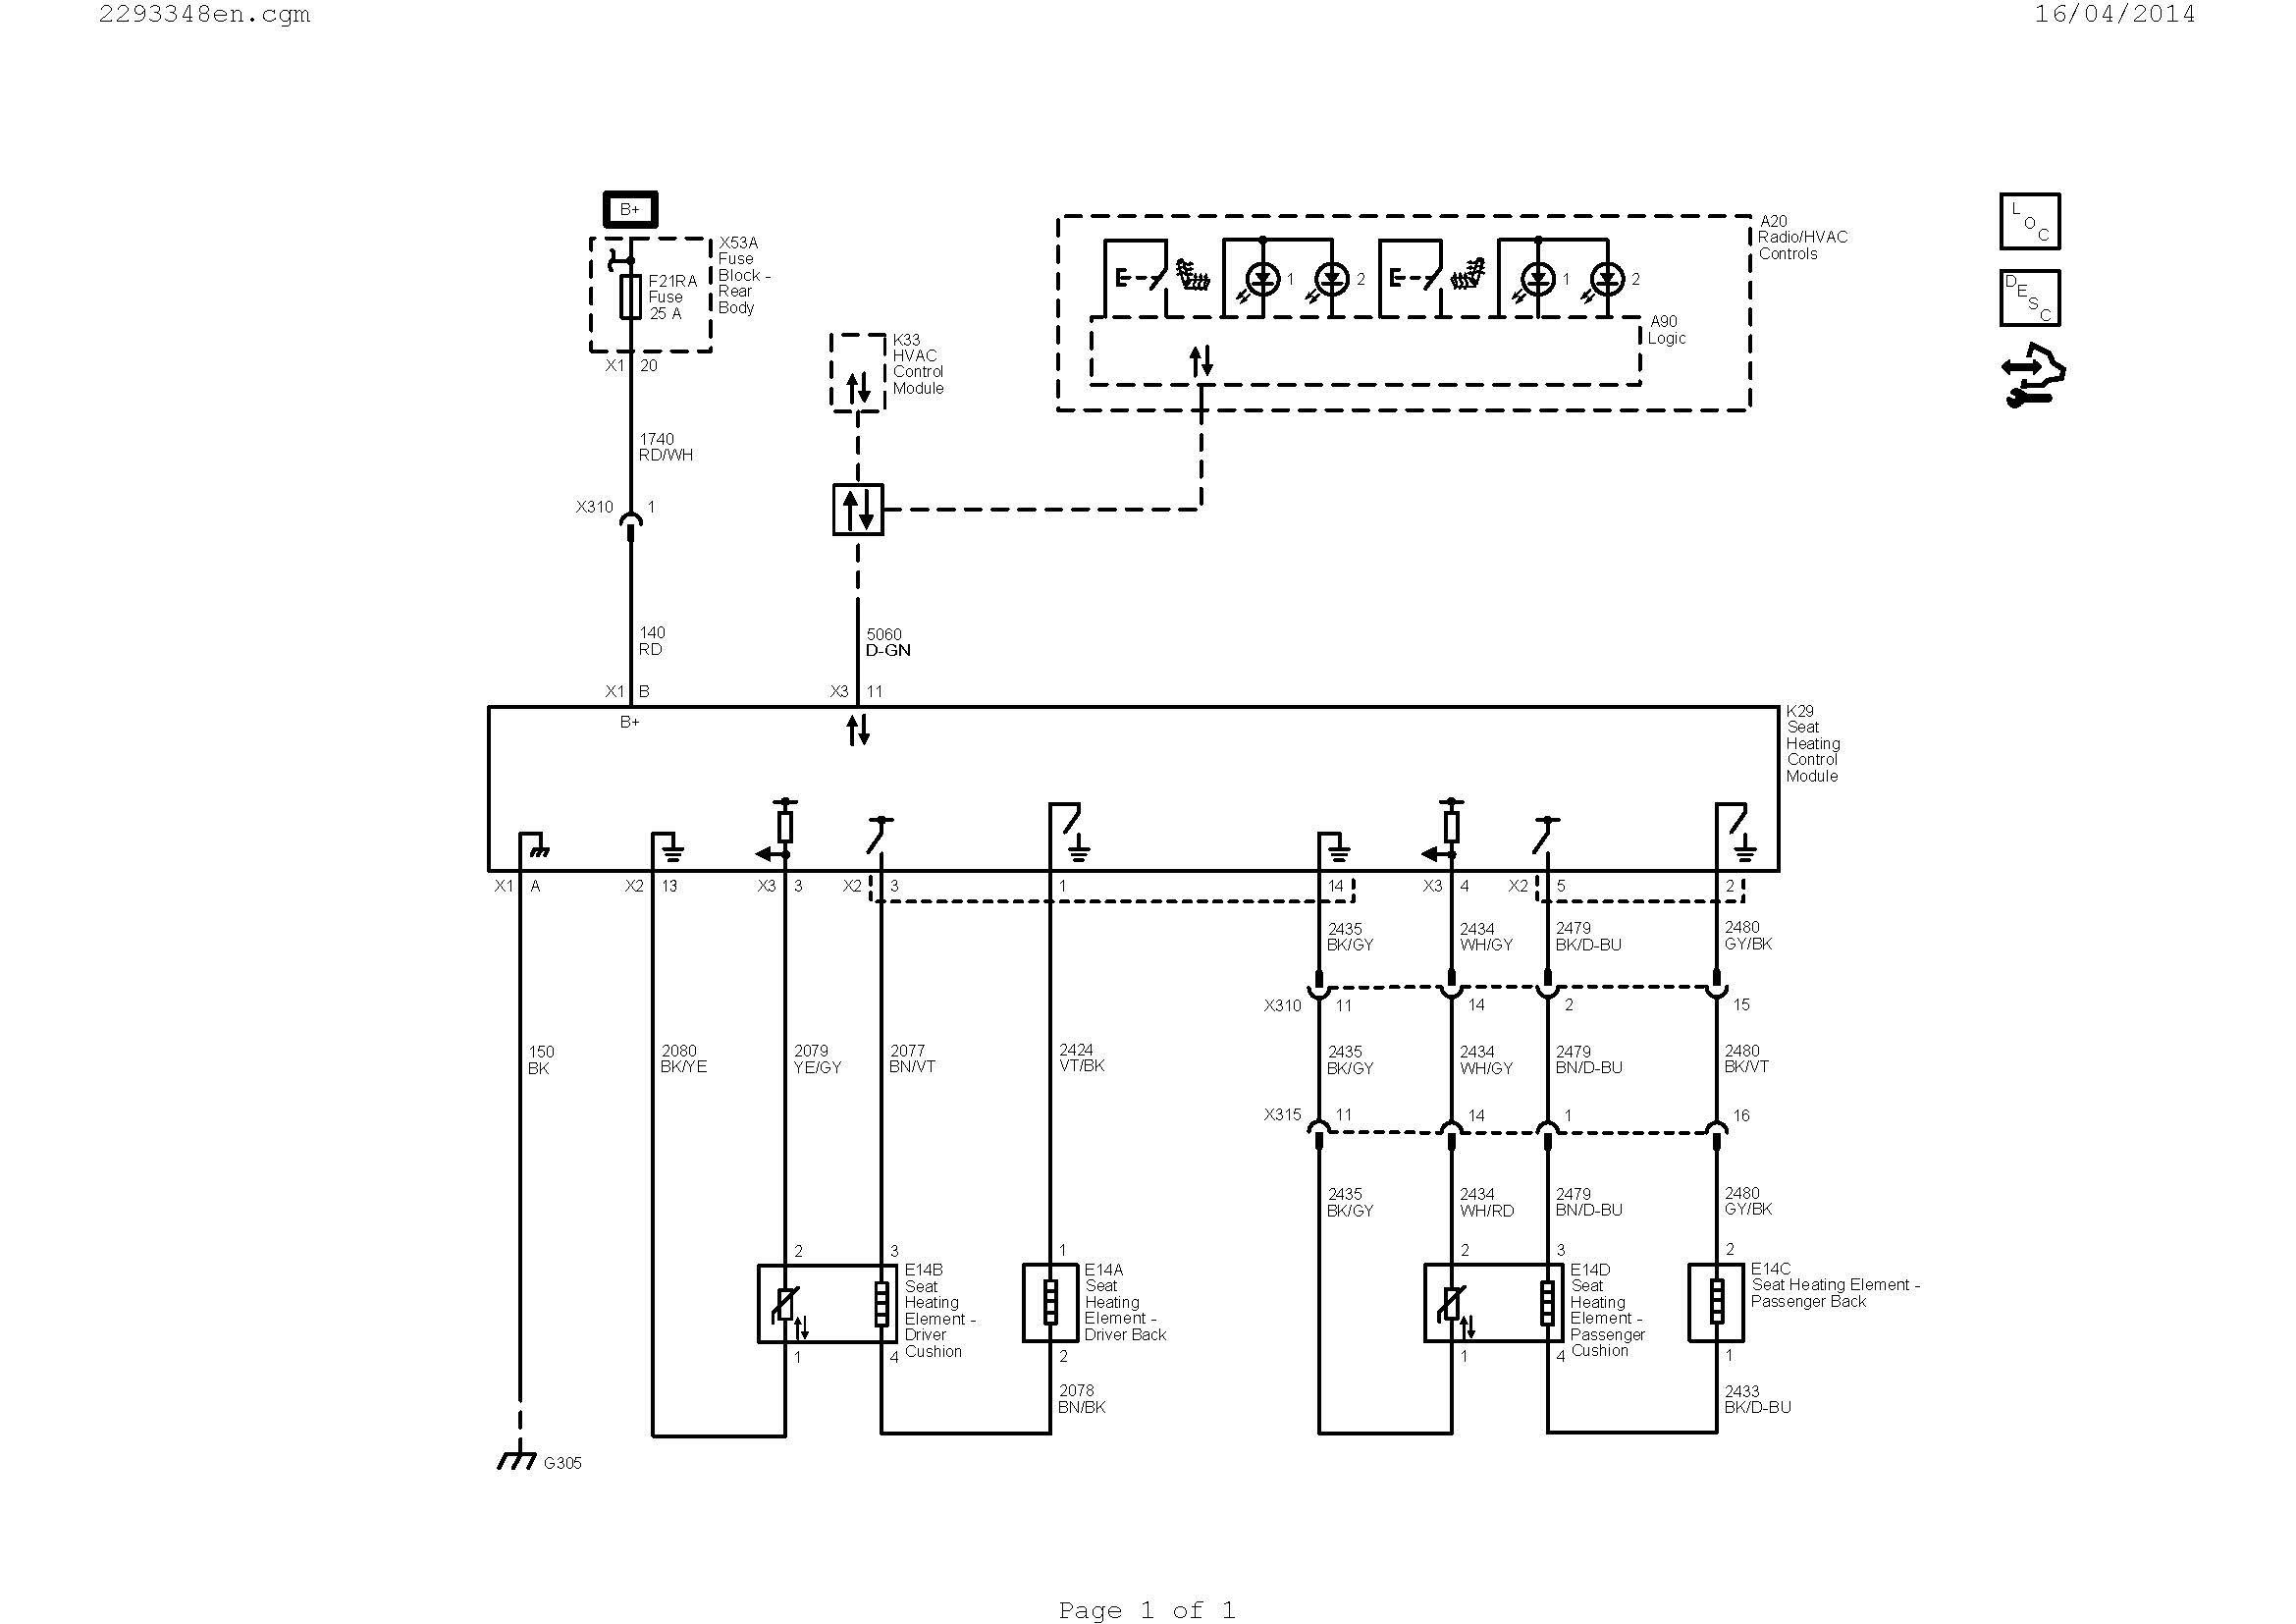 white rodgers relay wiring diagram Download-Control Relay Wiring Diagram Collection White Rodgers 50e47 843 Wiring Diagram Image 10-e